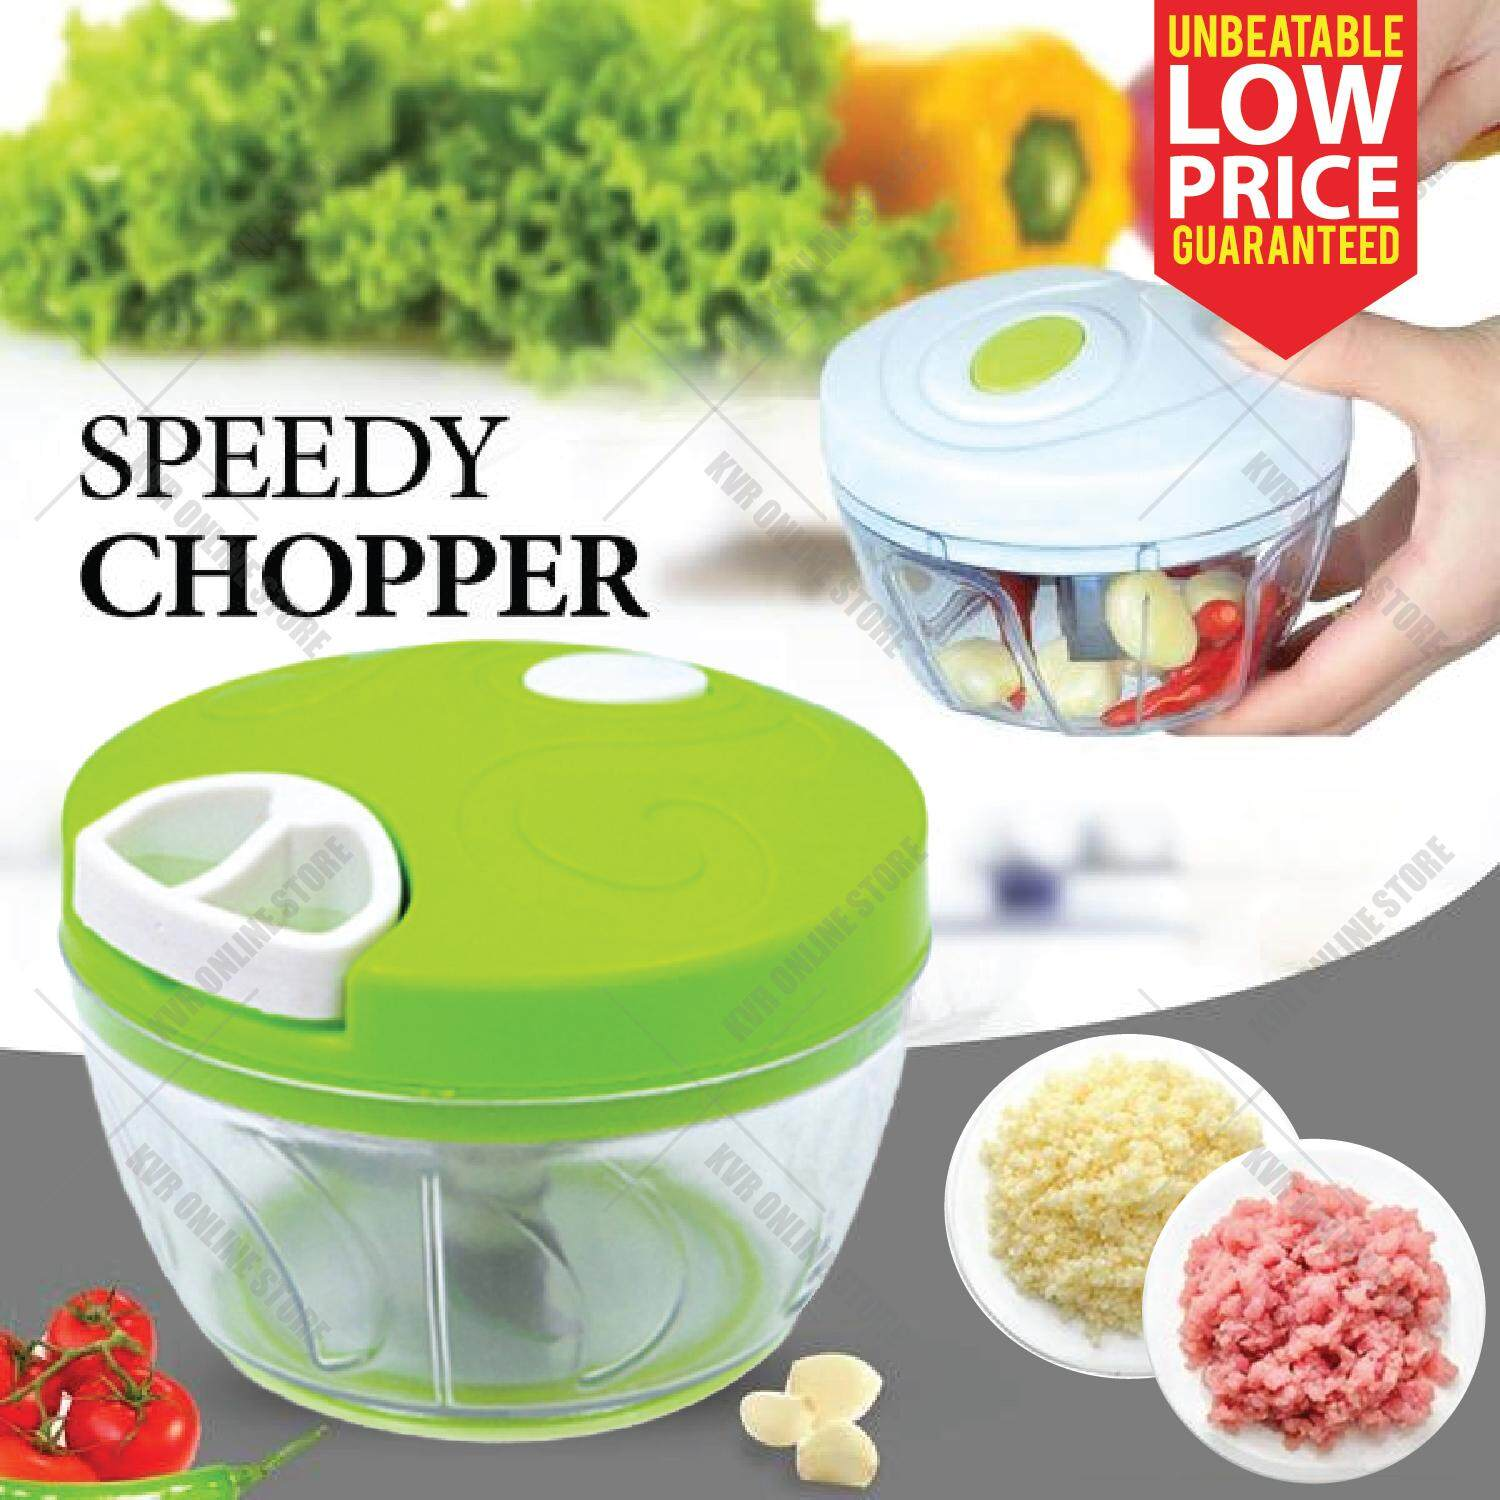 Manual Hand Pull Type Minced Speedy Chopper Garlic Meat Grinder Cutter By Kvr Online Store.